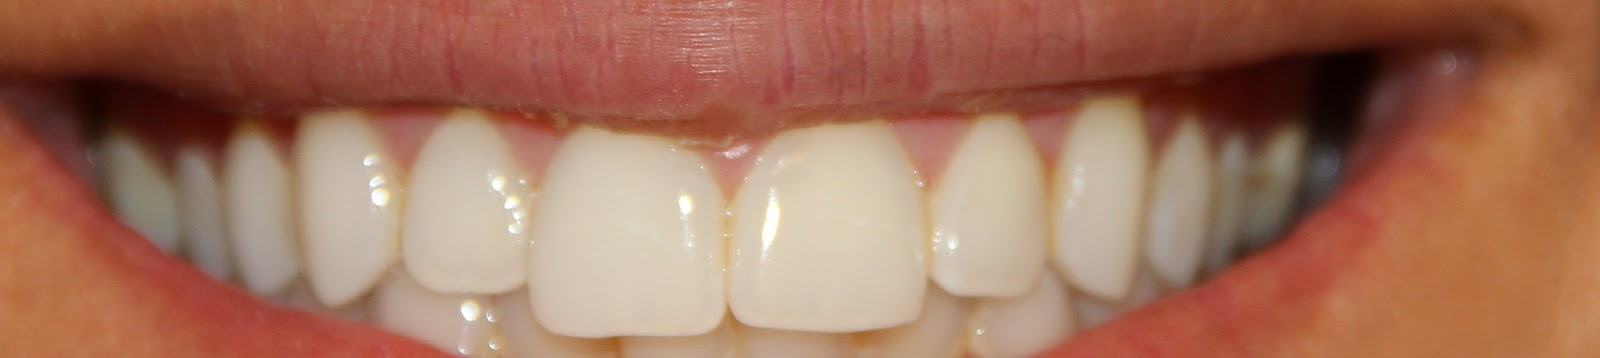 Crest 3d white intensive professional effects whitestrips review